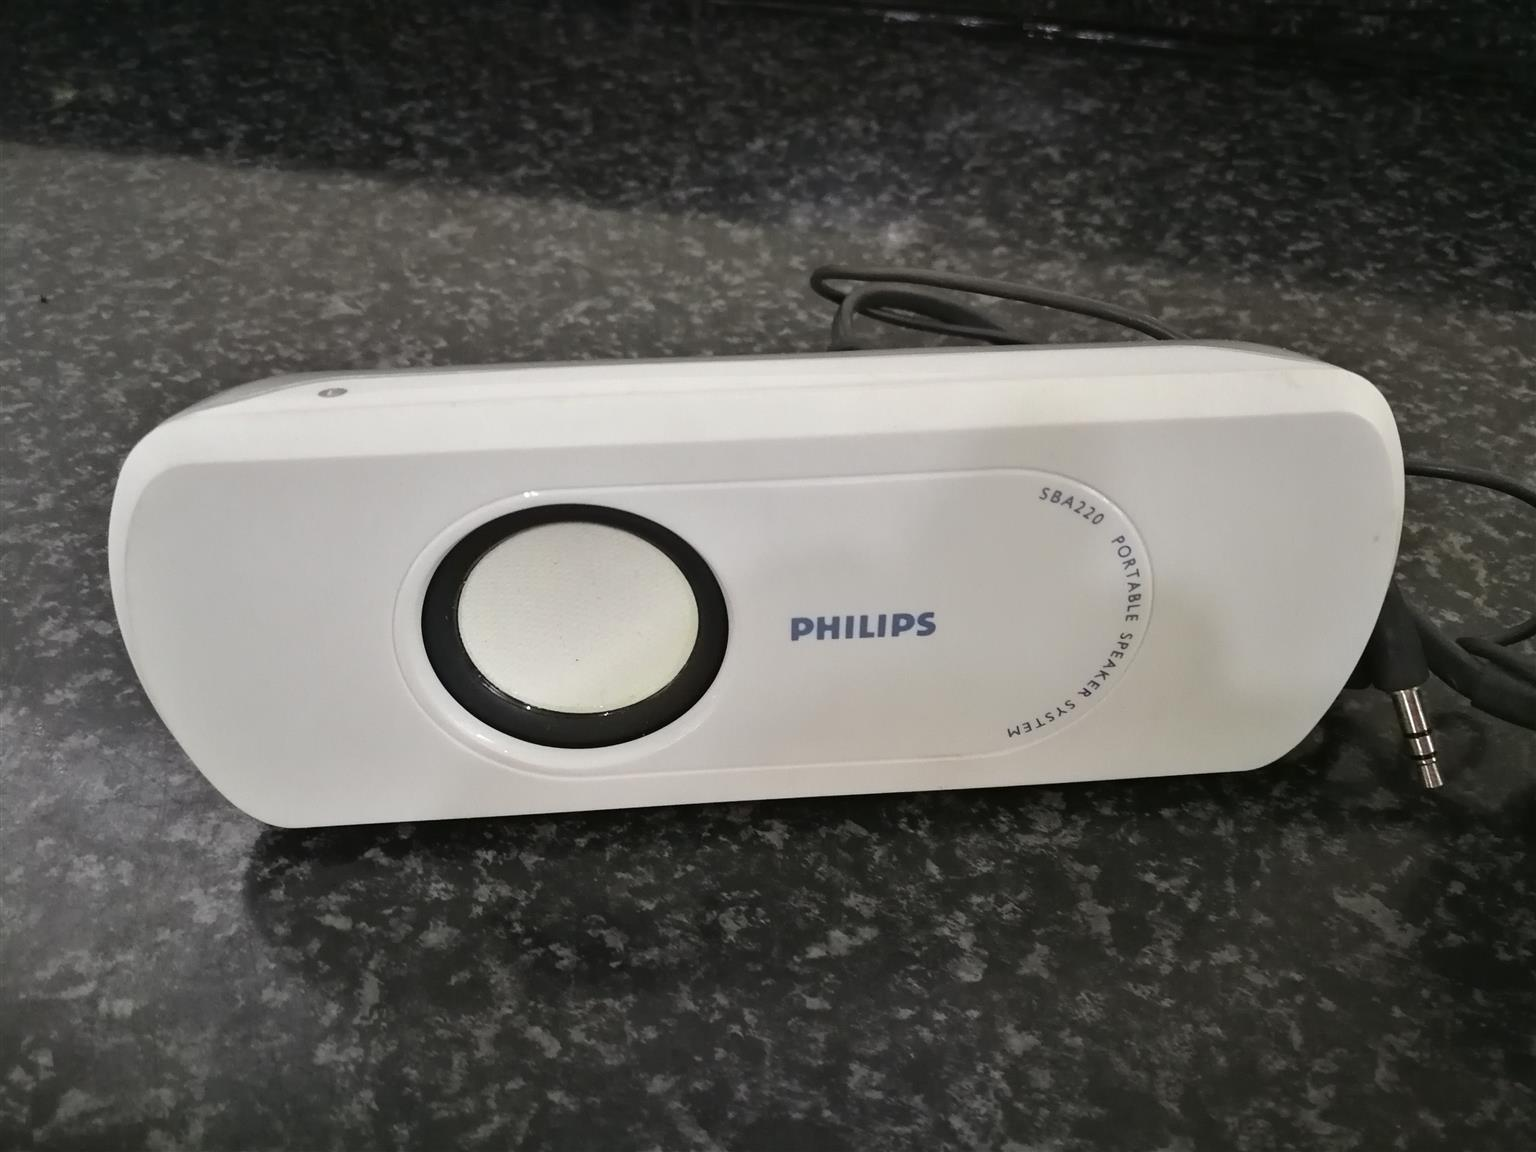 Phillips Portable Aux Speakers with Pouch